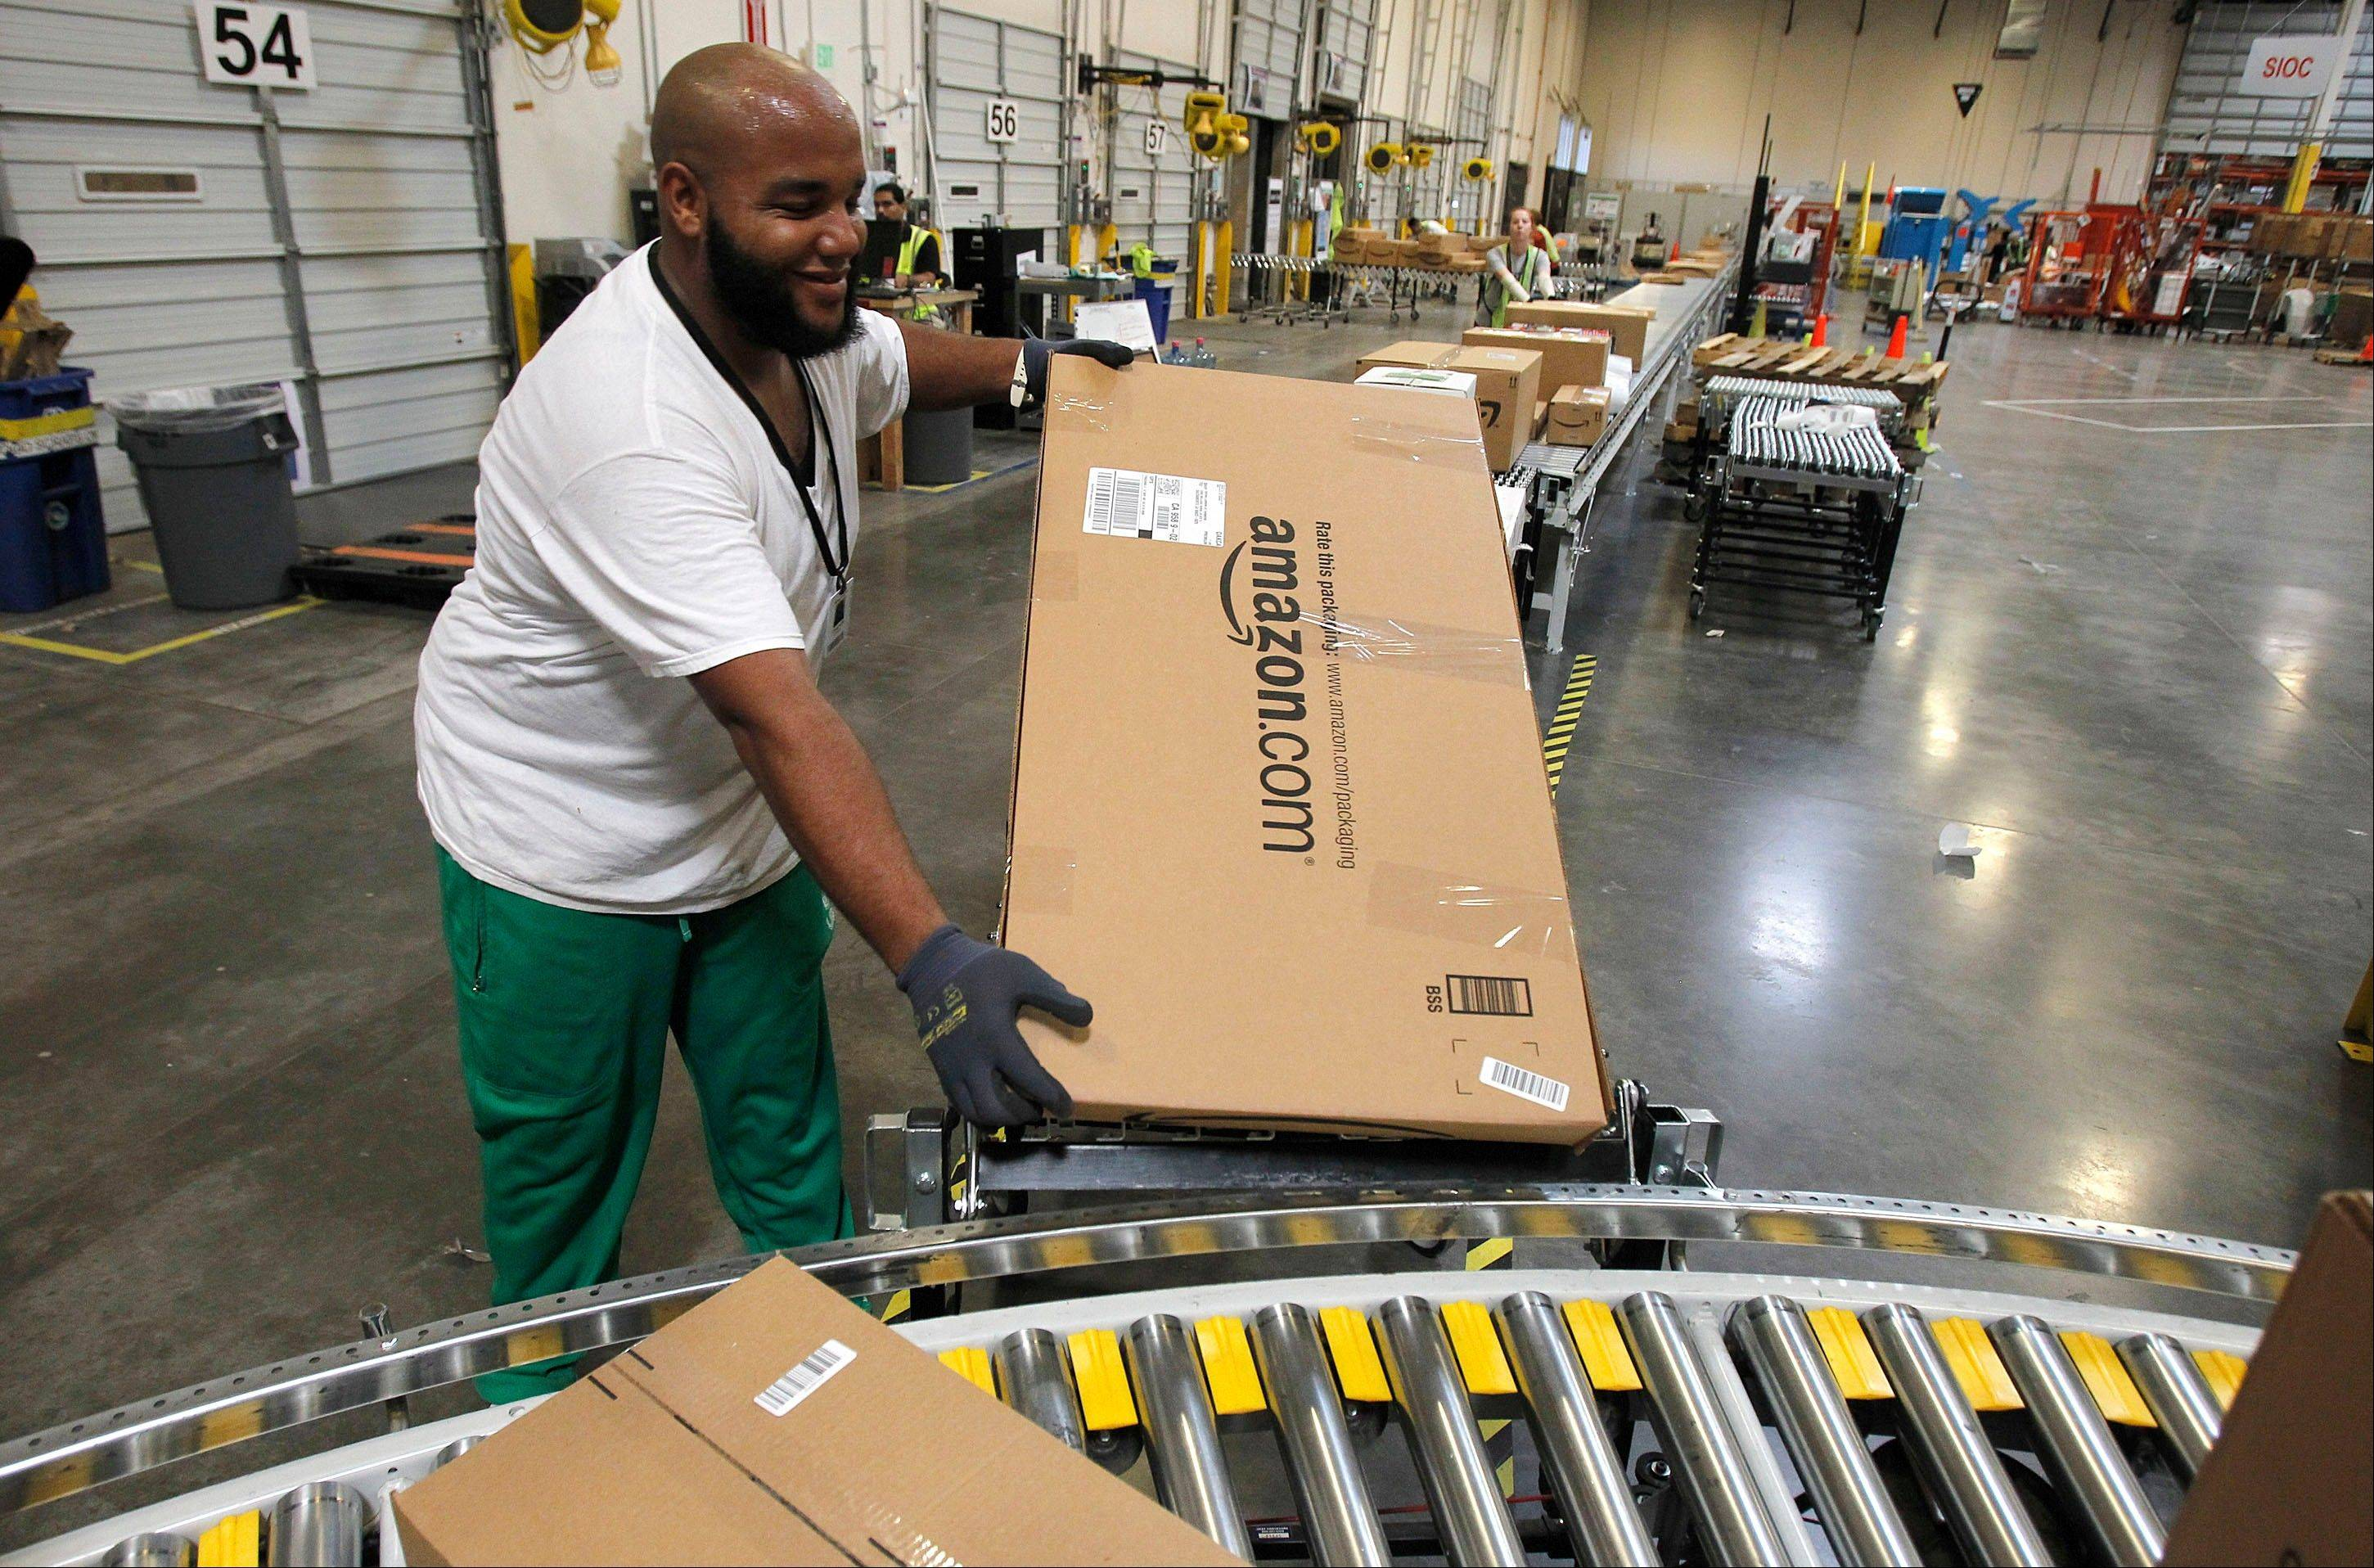 "Leacroft Green places a package to the correct shipping area at an Amazon.com fulfillment center, in Goodyear, Ariz. Amazon is teaming up with the U.S. Postal Service to deliver packages on Sundays. The Seattle company said Monday, Nov. 11, 2013, that Sunday delivery will be available this week to customers in the New York and Los Angeles metropolitan areas. Amazon and the Postal Service plan to roll out service to ""a large portion of the U.S. population"" next year, including Dallas, Houston, New Orleans, and Phoenix."